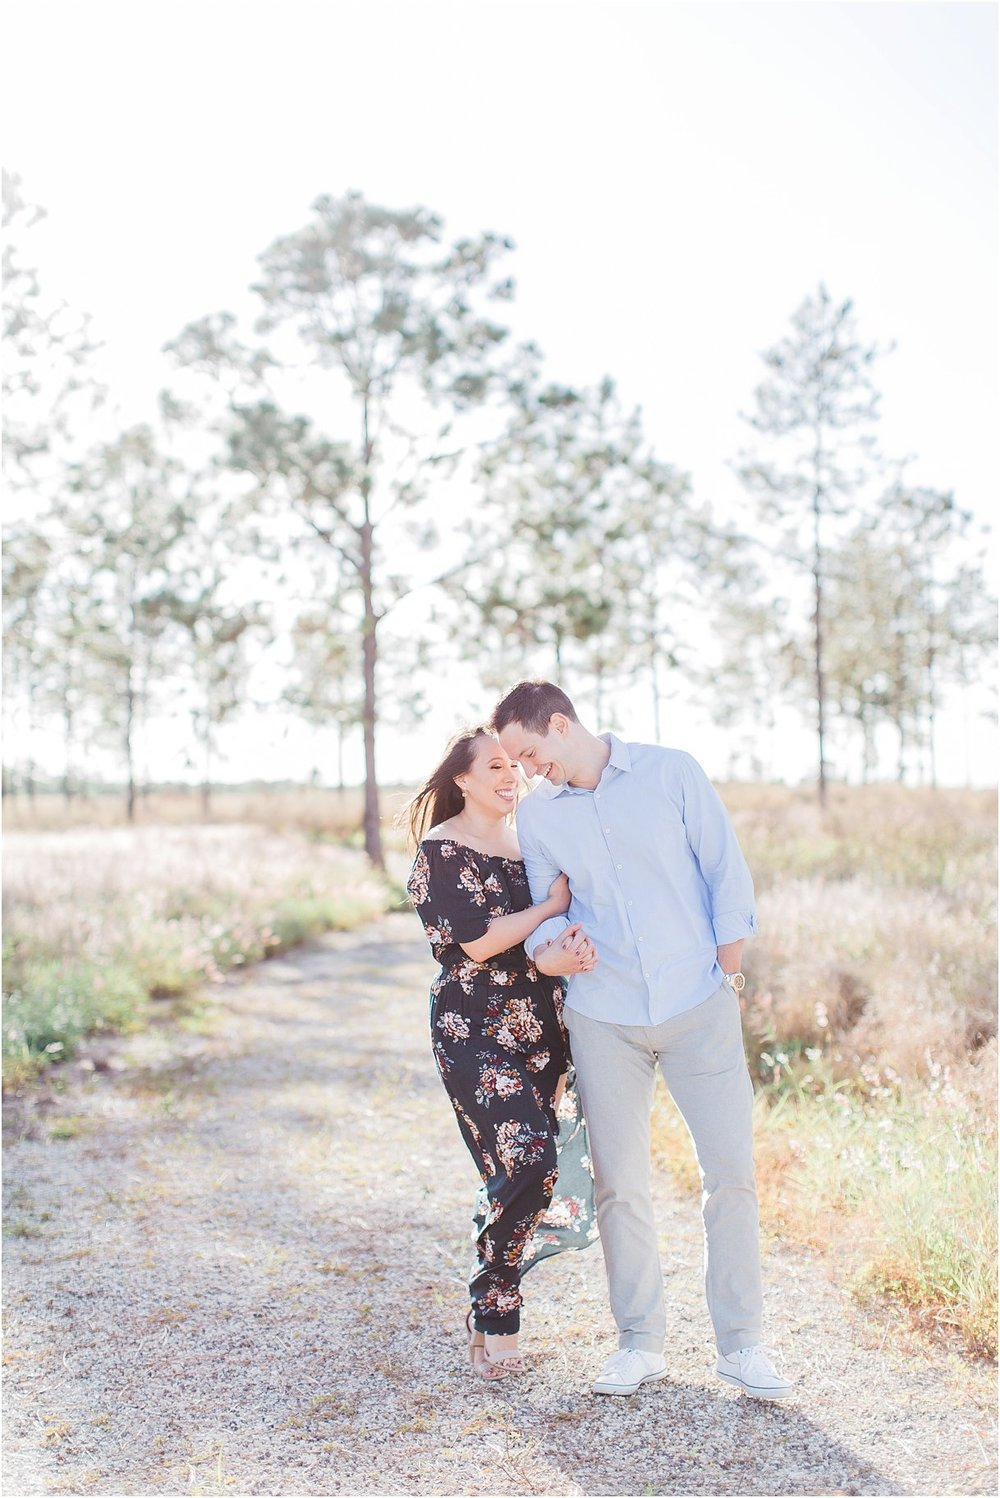 Bok Tower Engagement Session Fall Florida Tampa St Augustine DeLand Wedding Photographer19.jpg